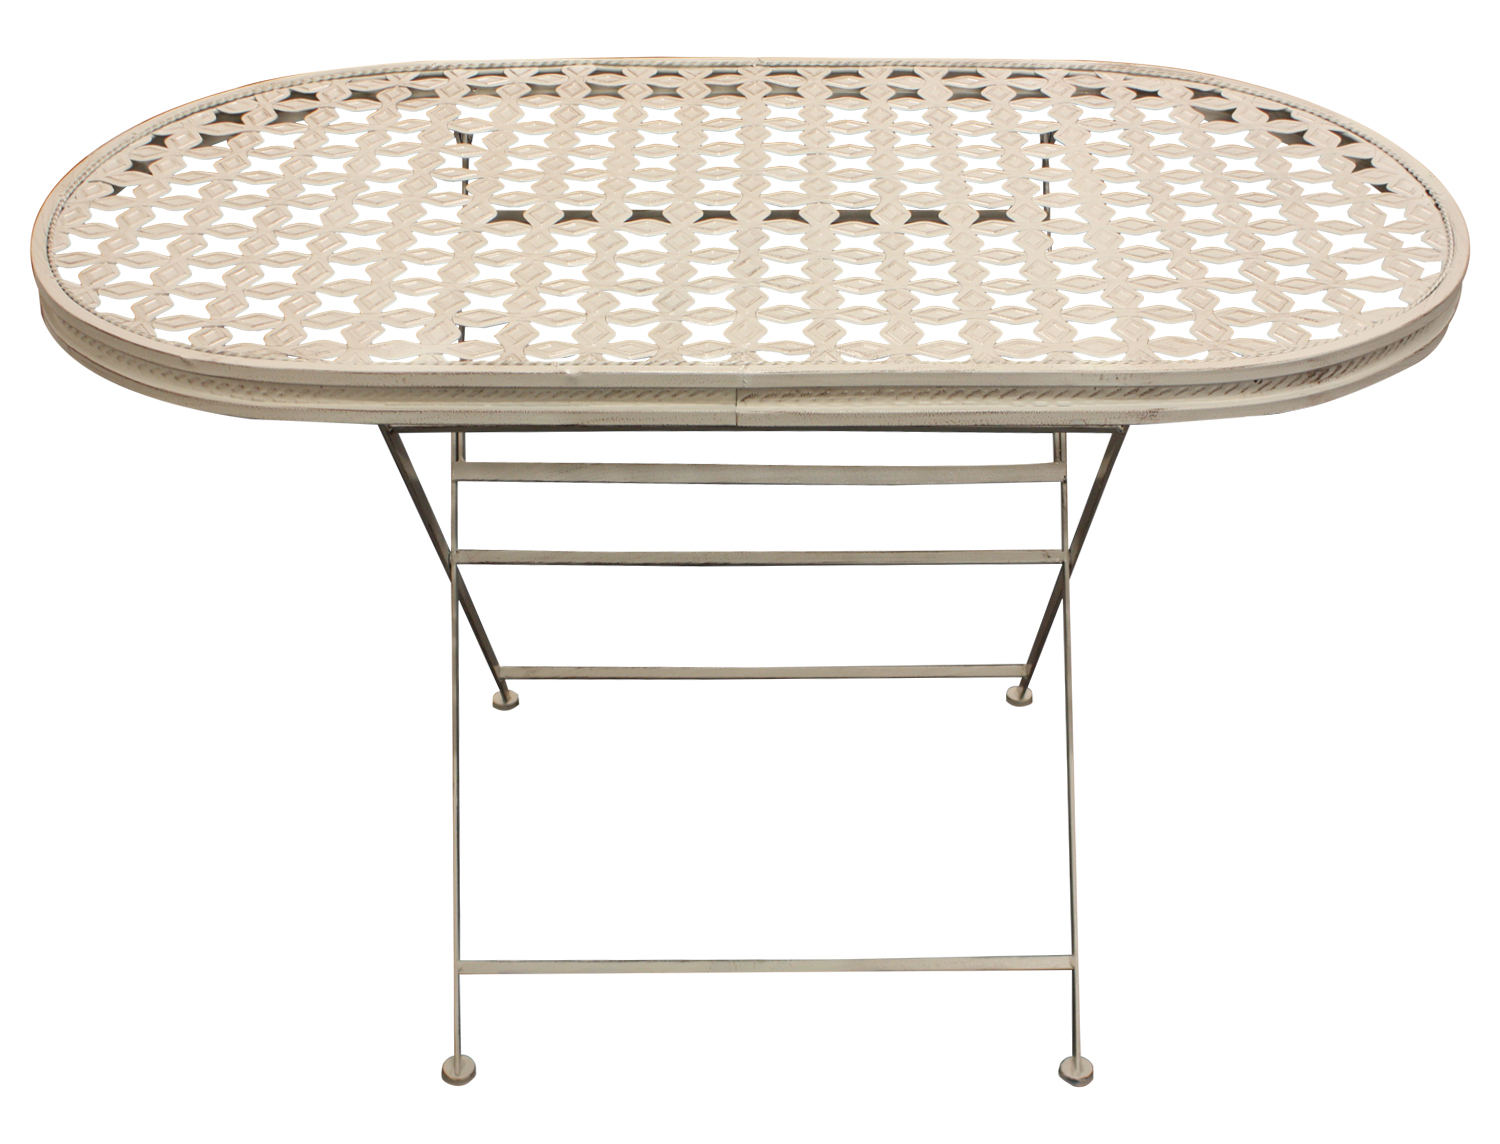 Maribelle Oval Folding Metal Garden Patio Dining Table Outdoor Furniture EBay